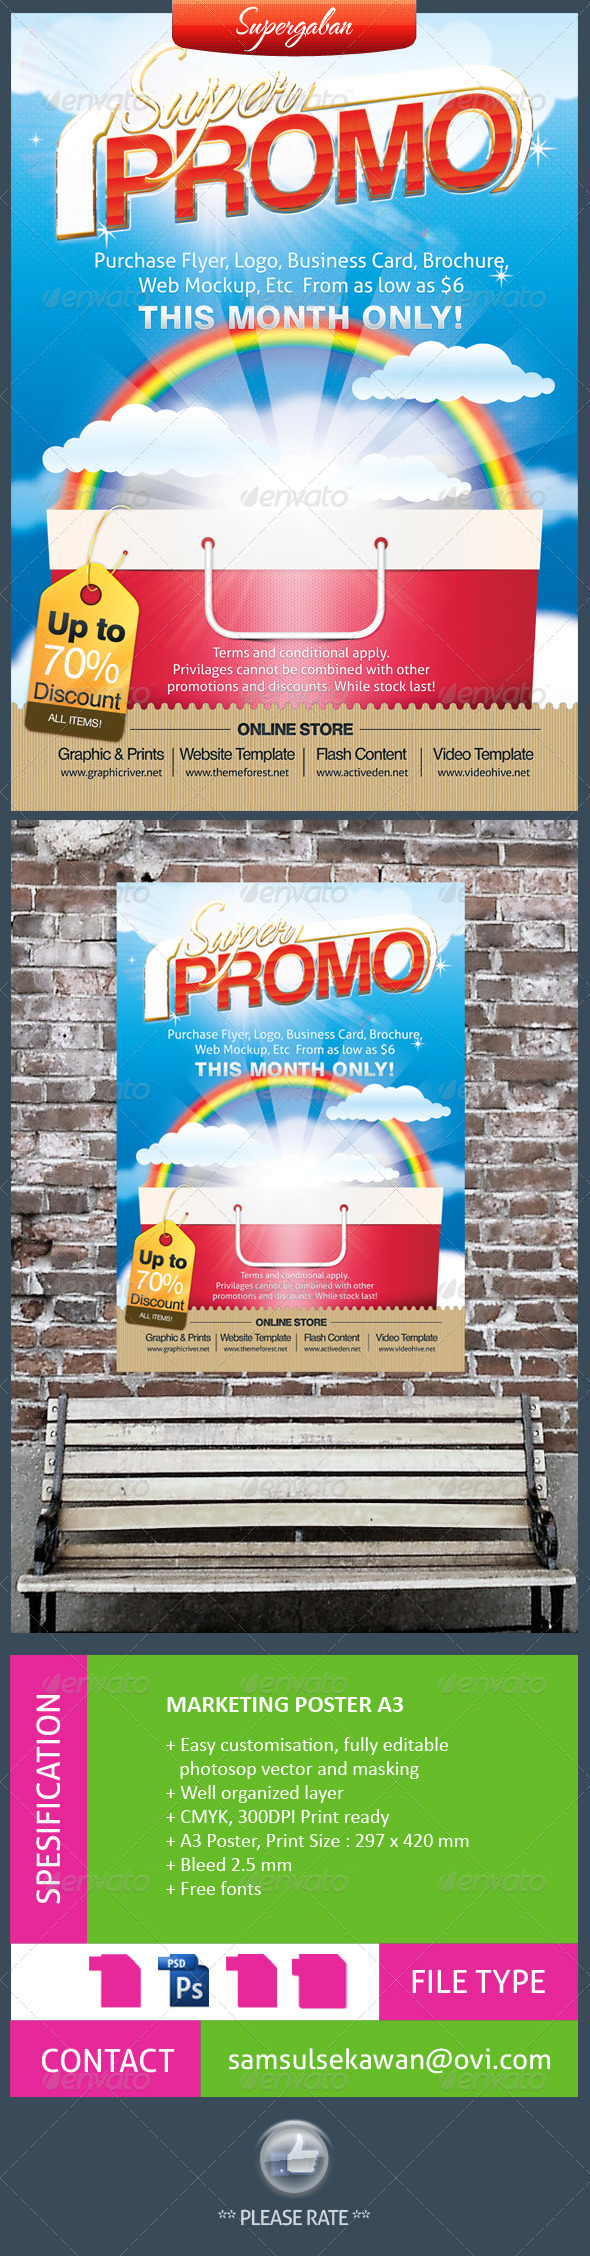 Marketing A3 Poster - Commerce Flyers